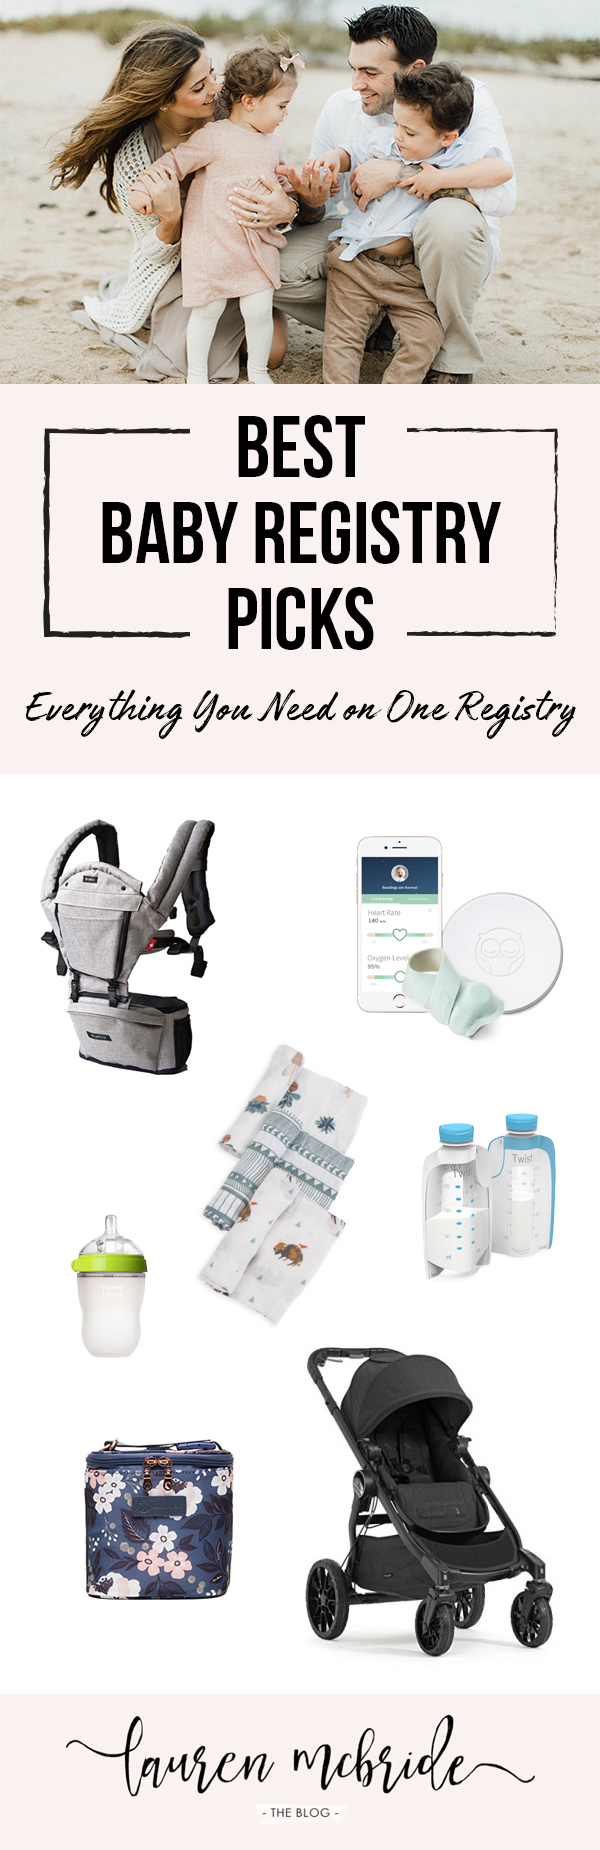 Life and style blogger Lauren McBride shares her Best Baby Registry Items in each category, plus a baby registry service that makes registering easier!